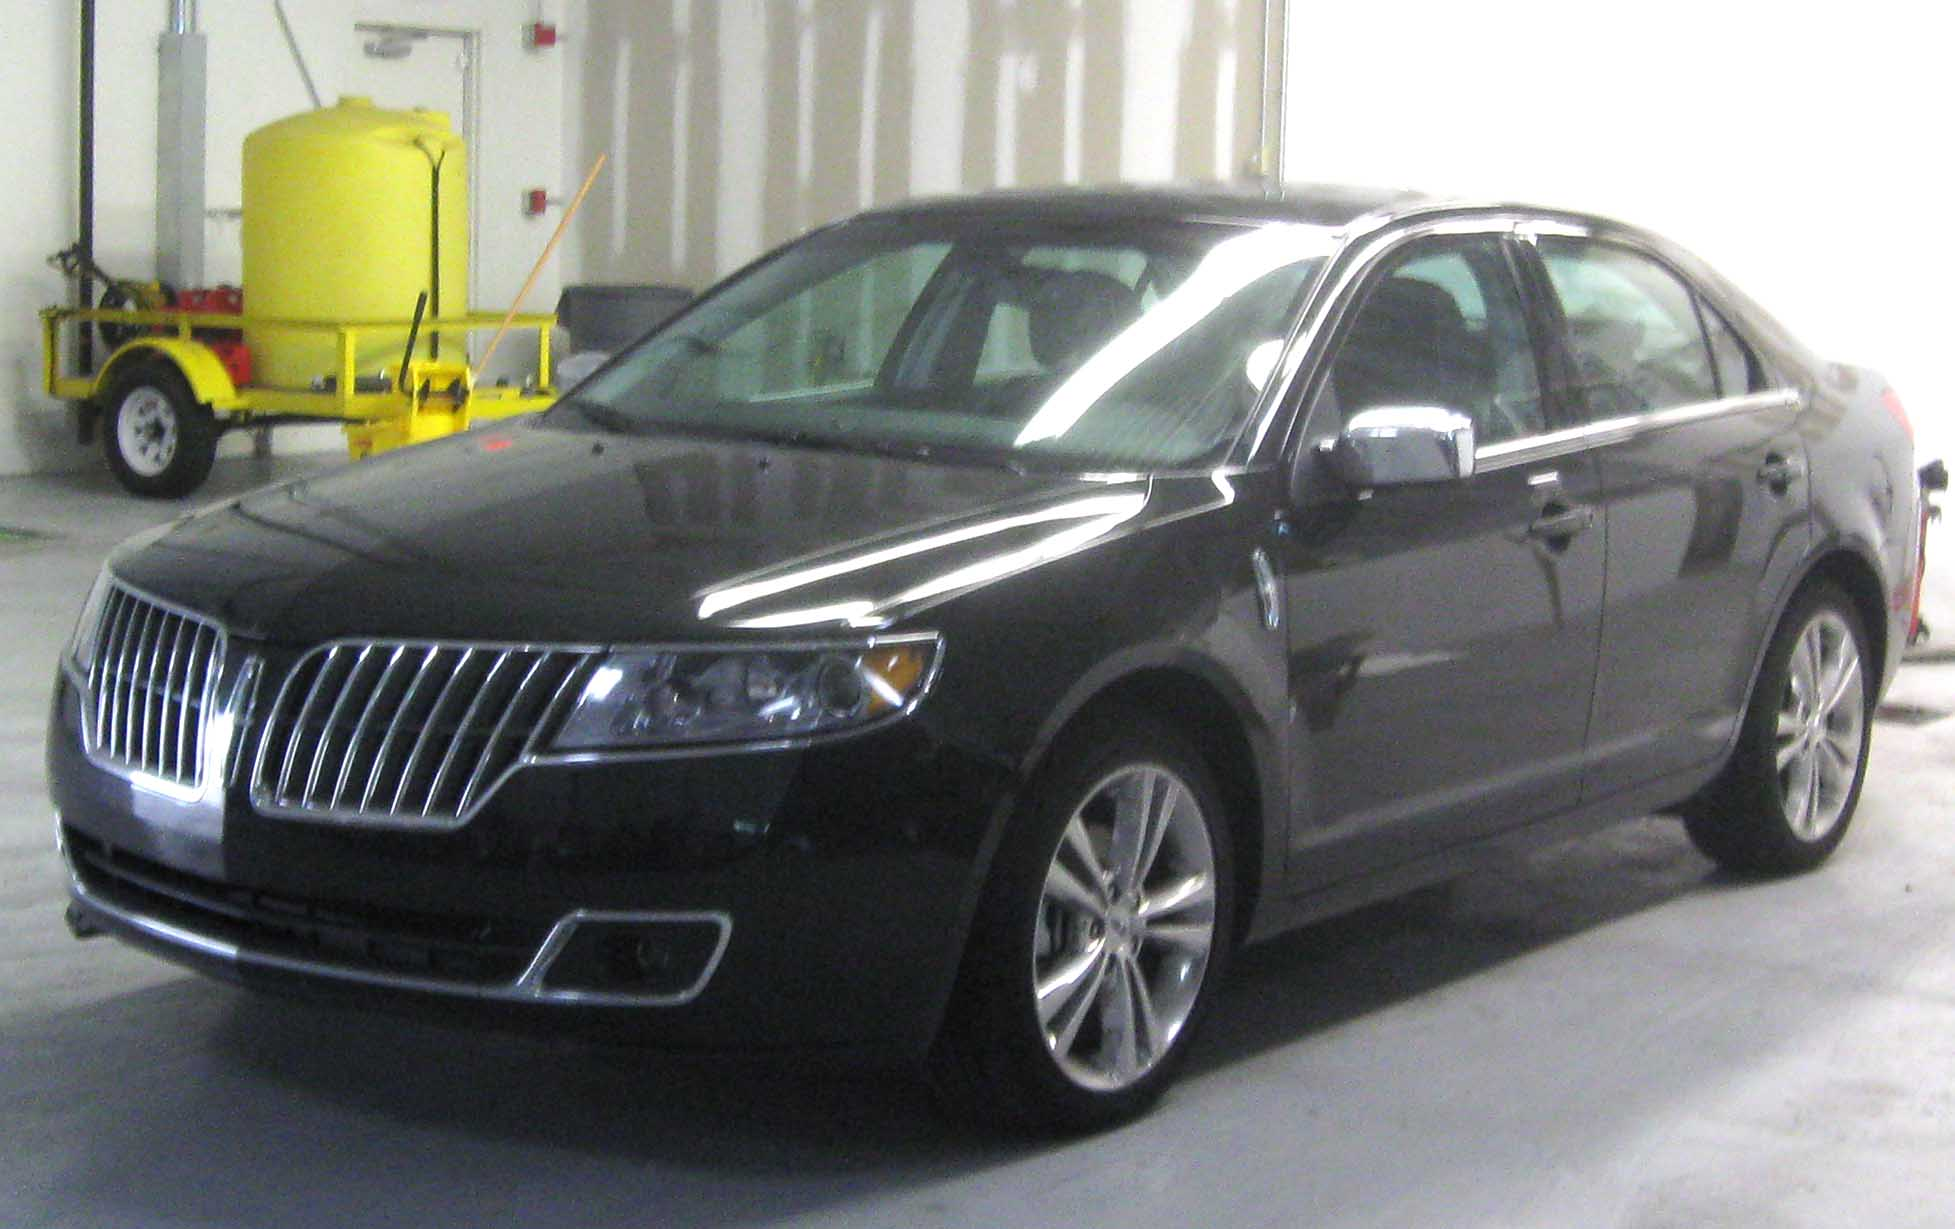 File:2010 Lincoln MKZ -- 07-31-2009.jpg - Wikimedia Commons